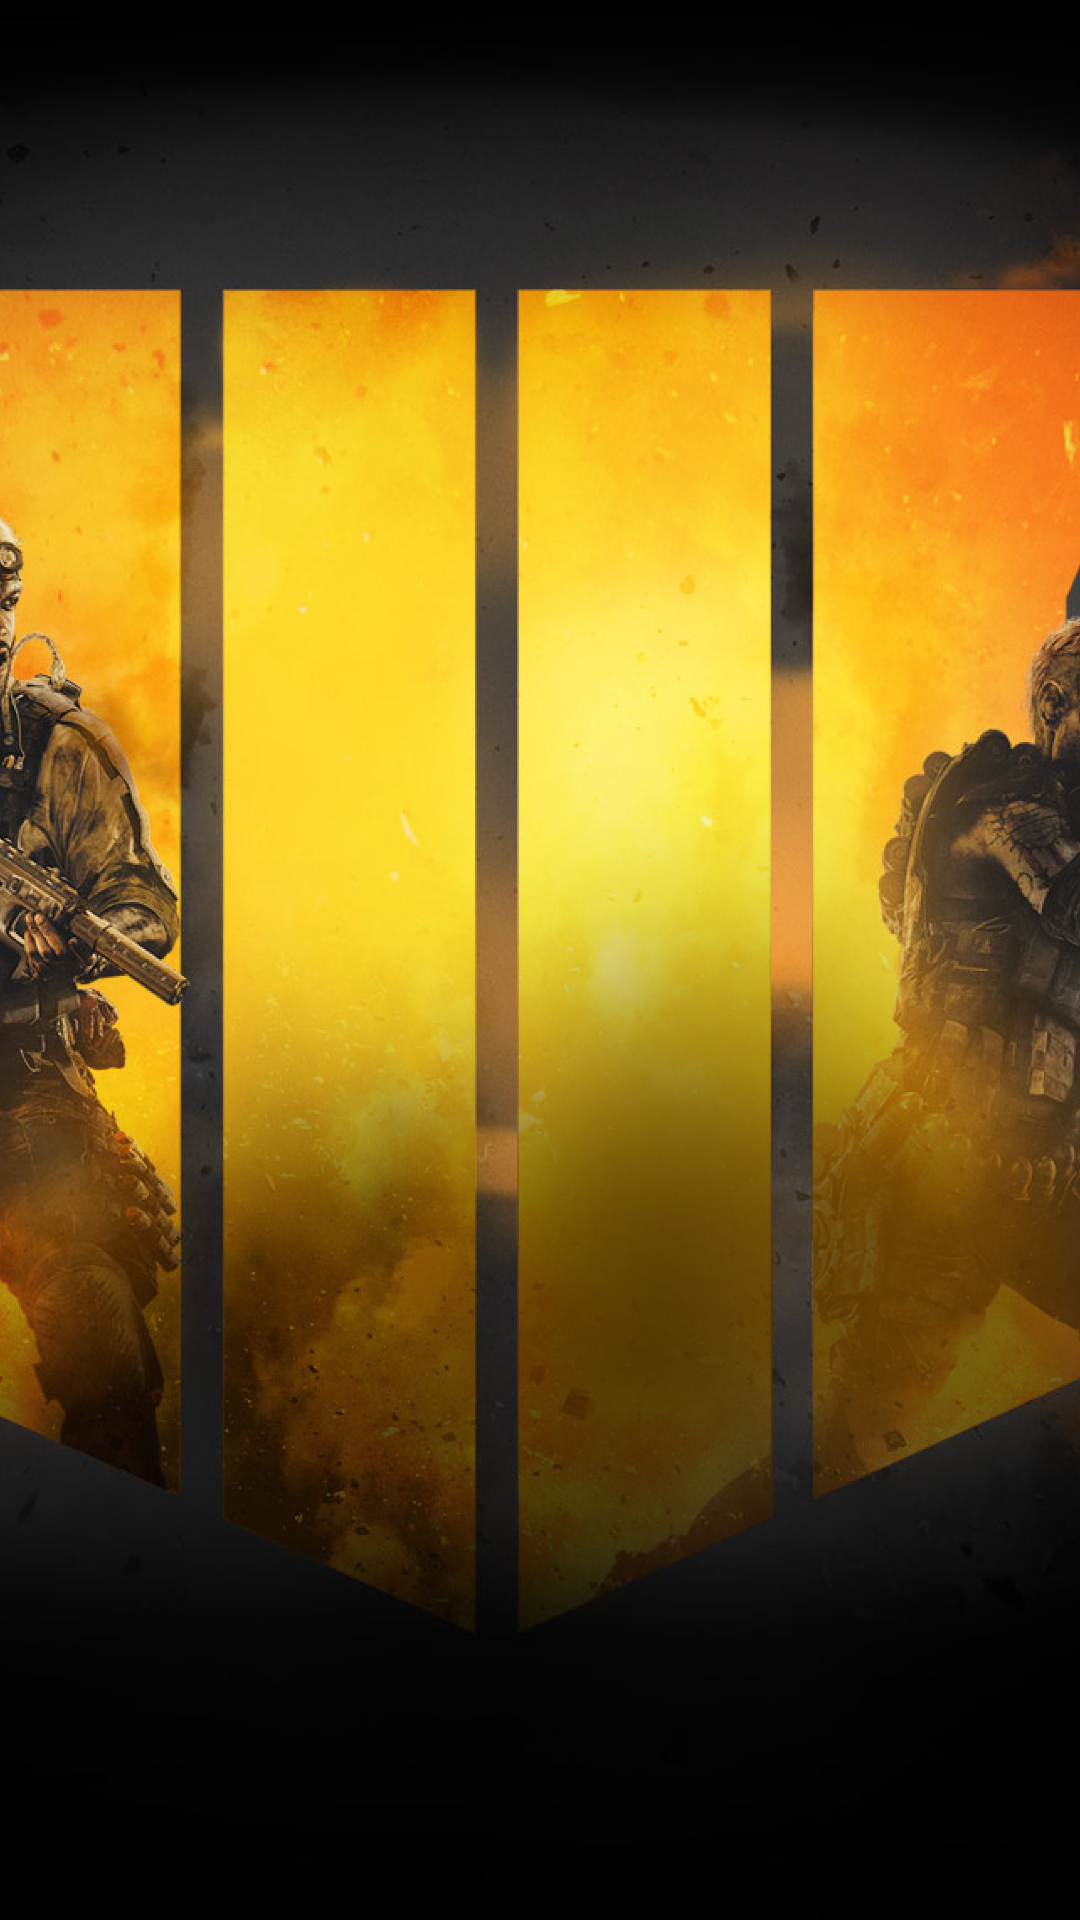 1080x1920 Call Of Duty Black Ops 4 Game Poster Iphone 7 6s 6